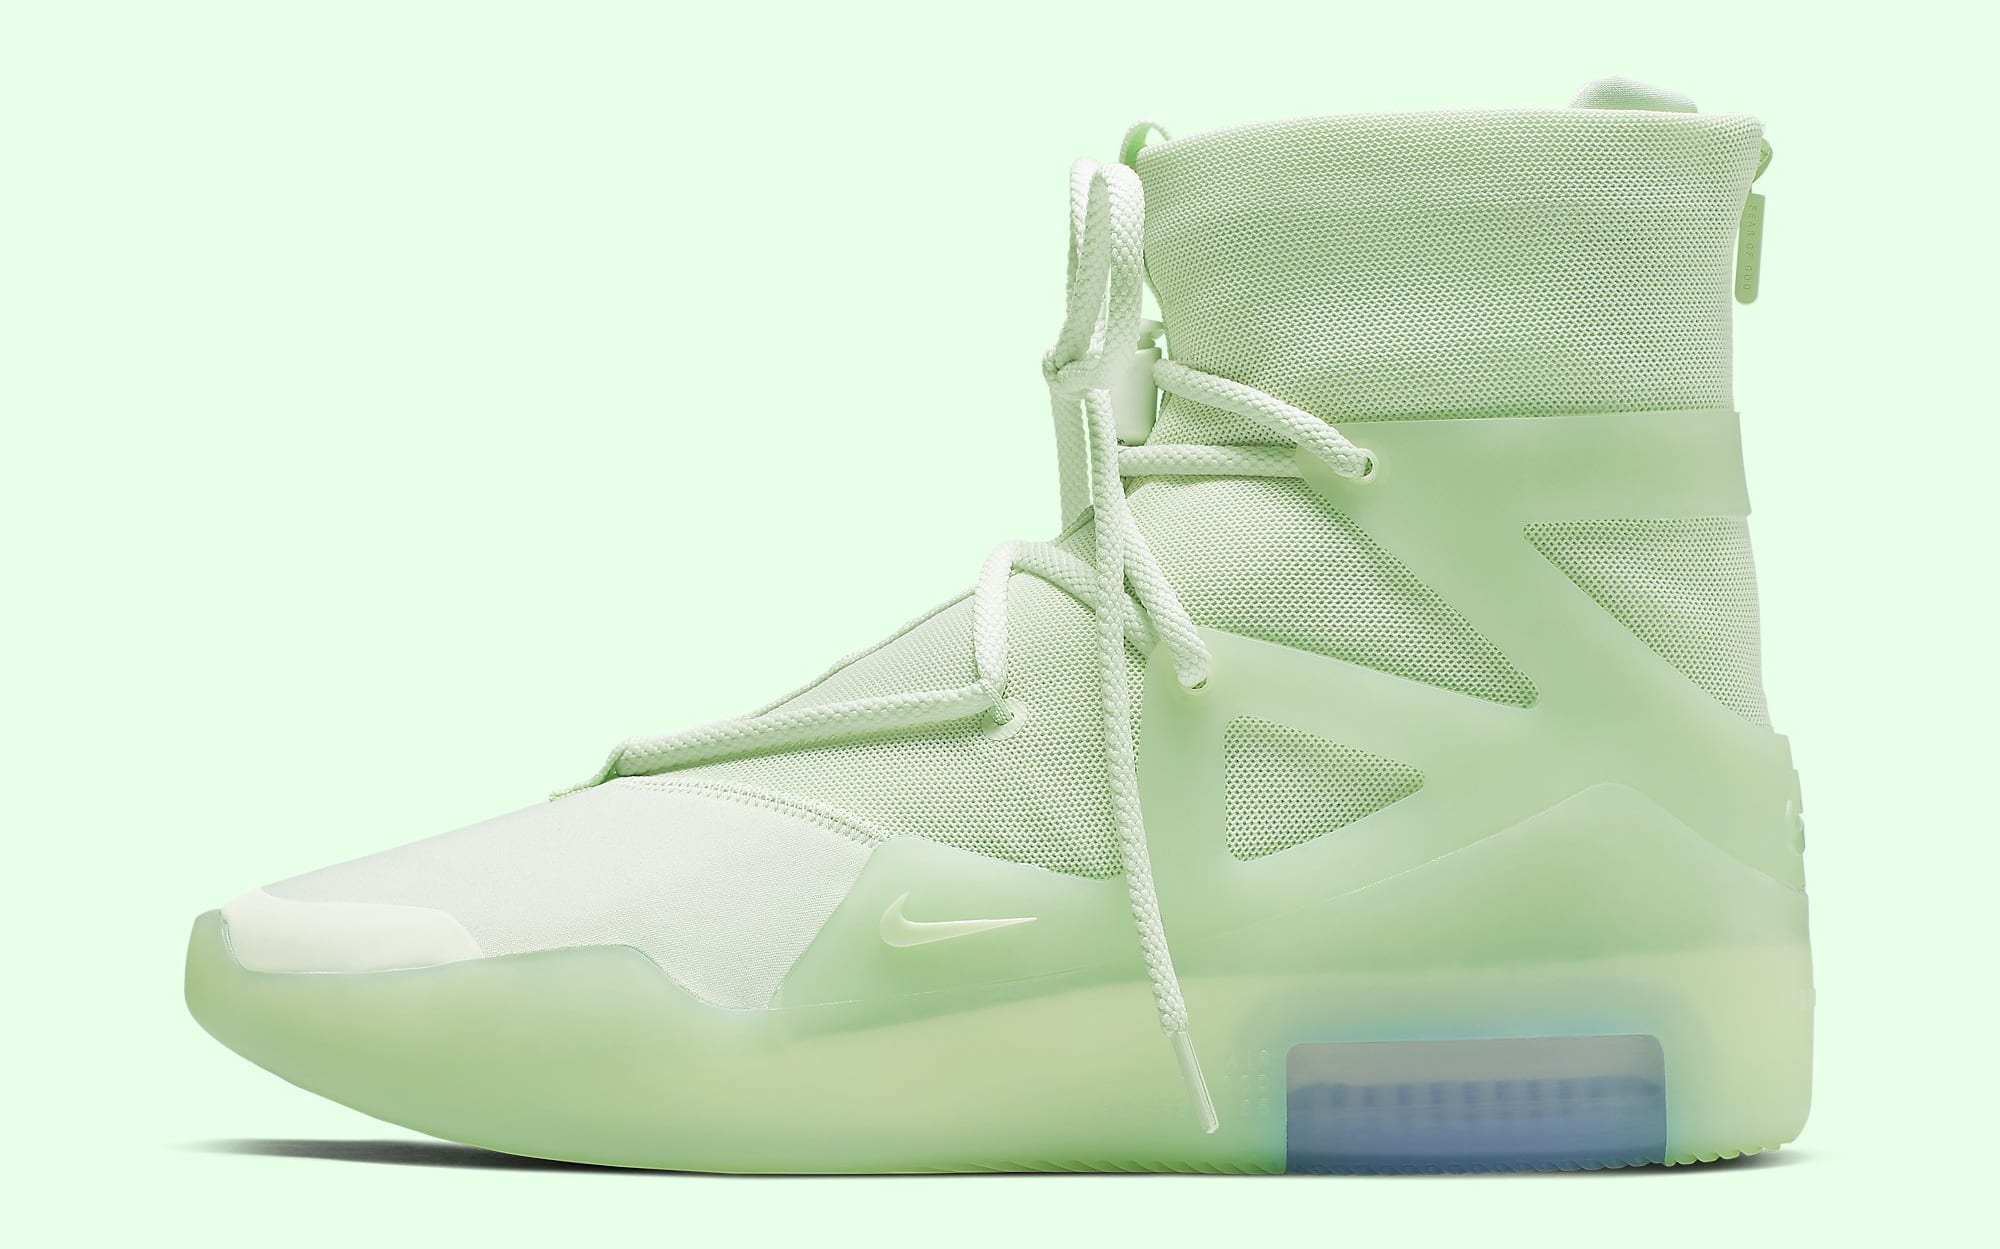 Nike Air Fear of God 1 'Frosted Spruce' AR4237-300 Lateral